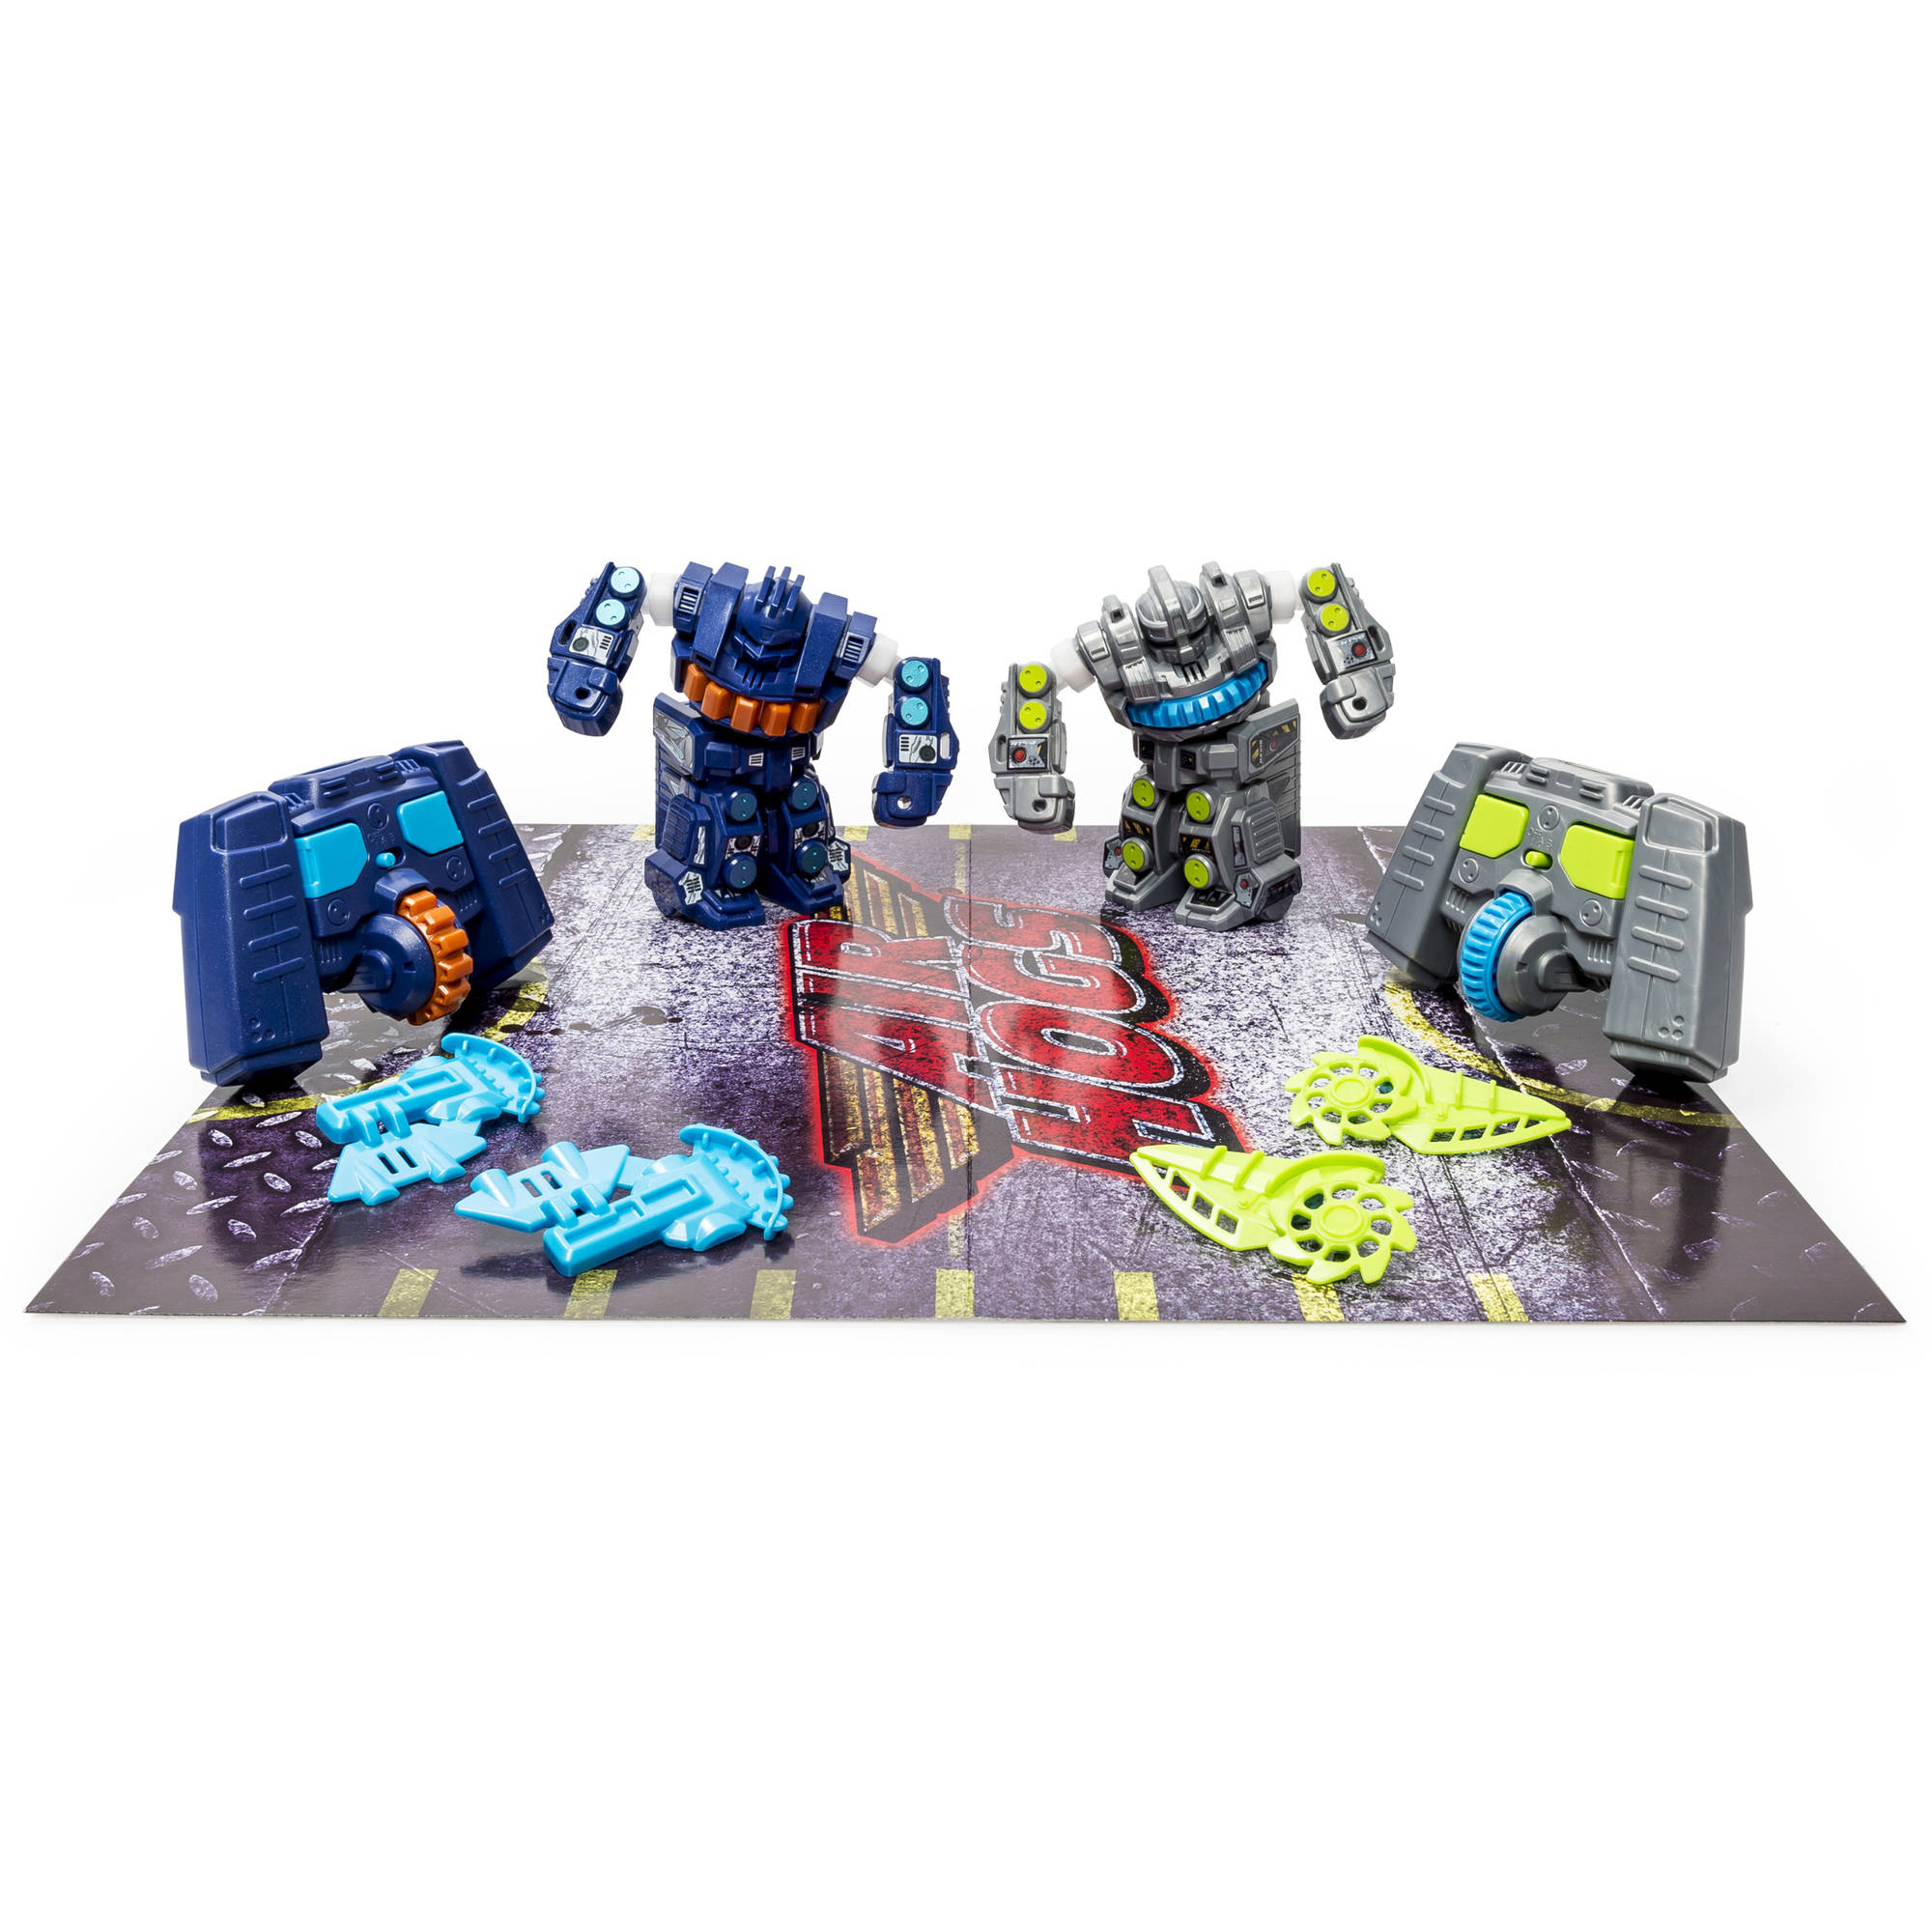 Air Hogs Smash Bots Remote Control Battling Robots